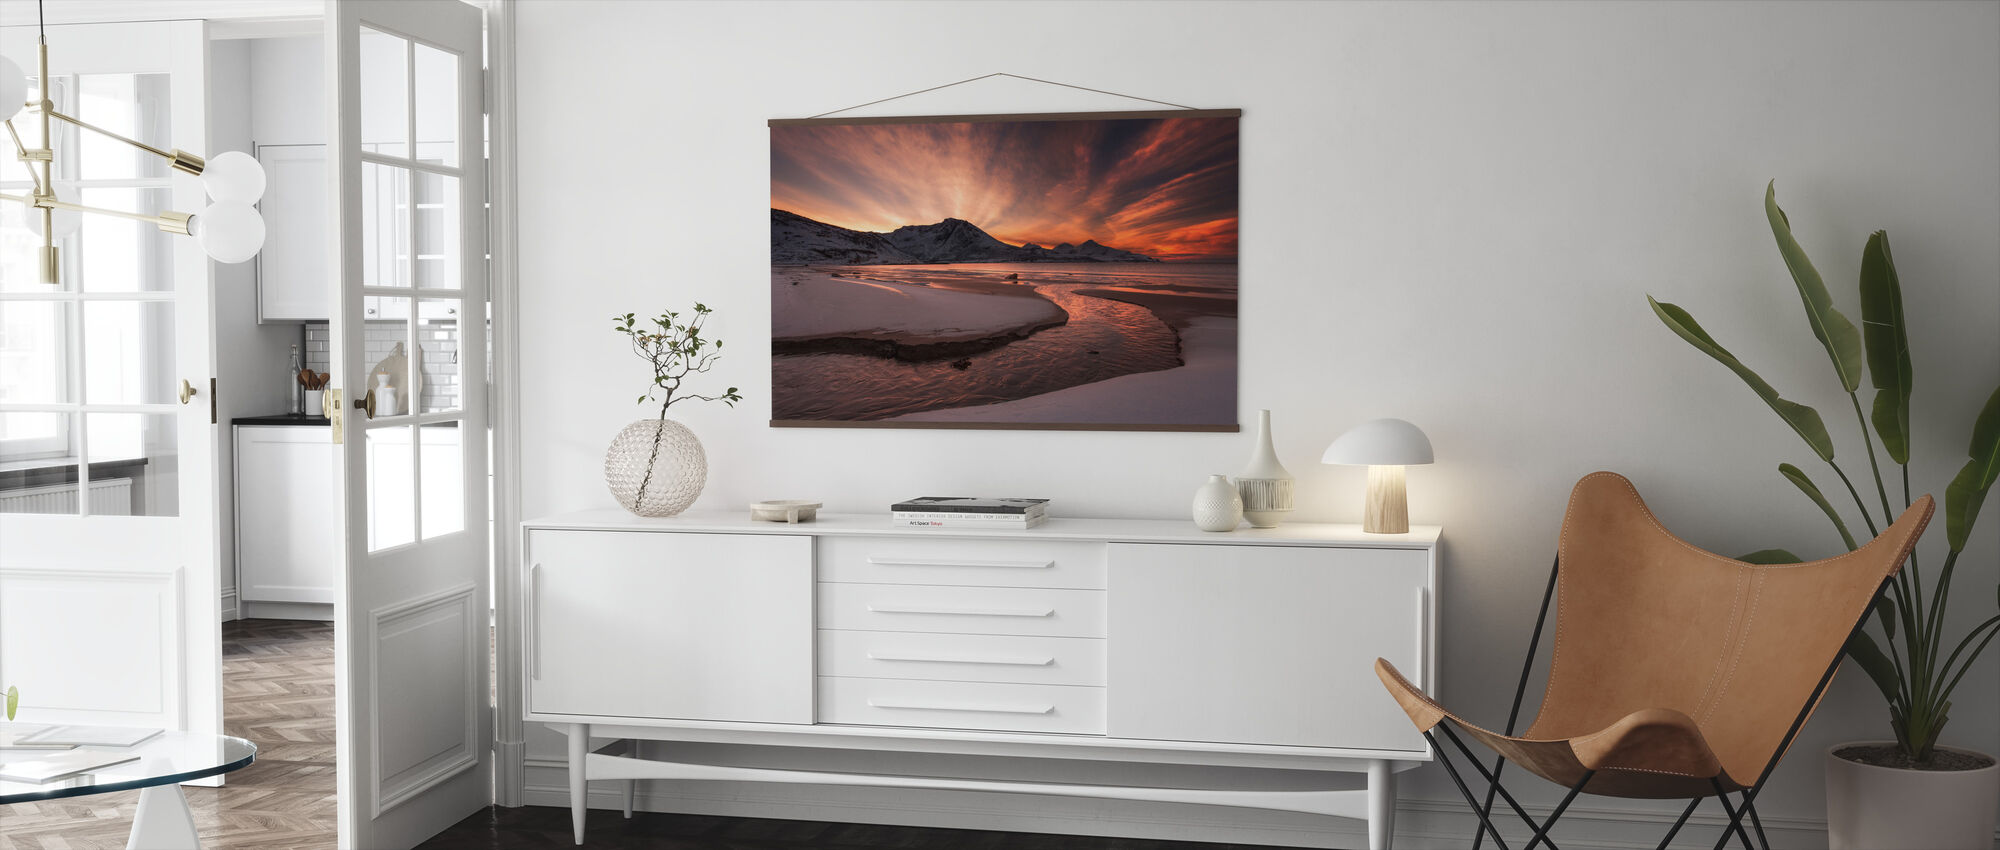 Golden Sunset in Norway - Poster - Living Room